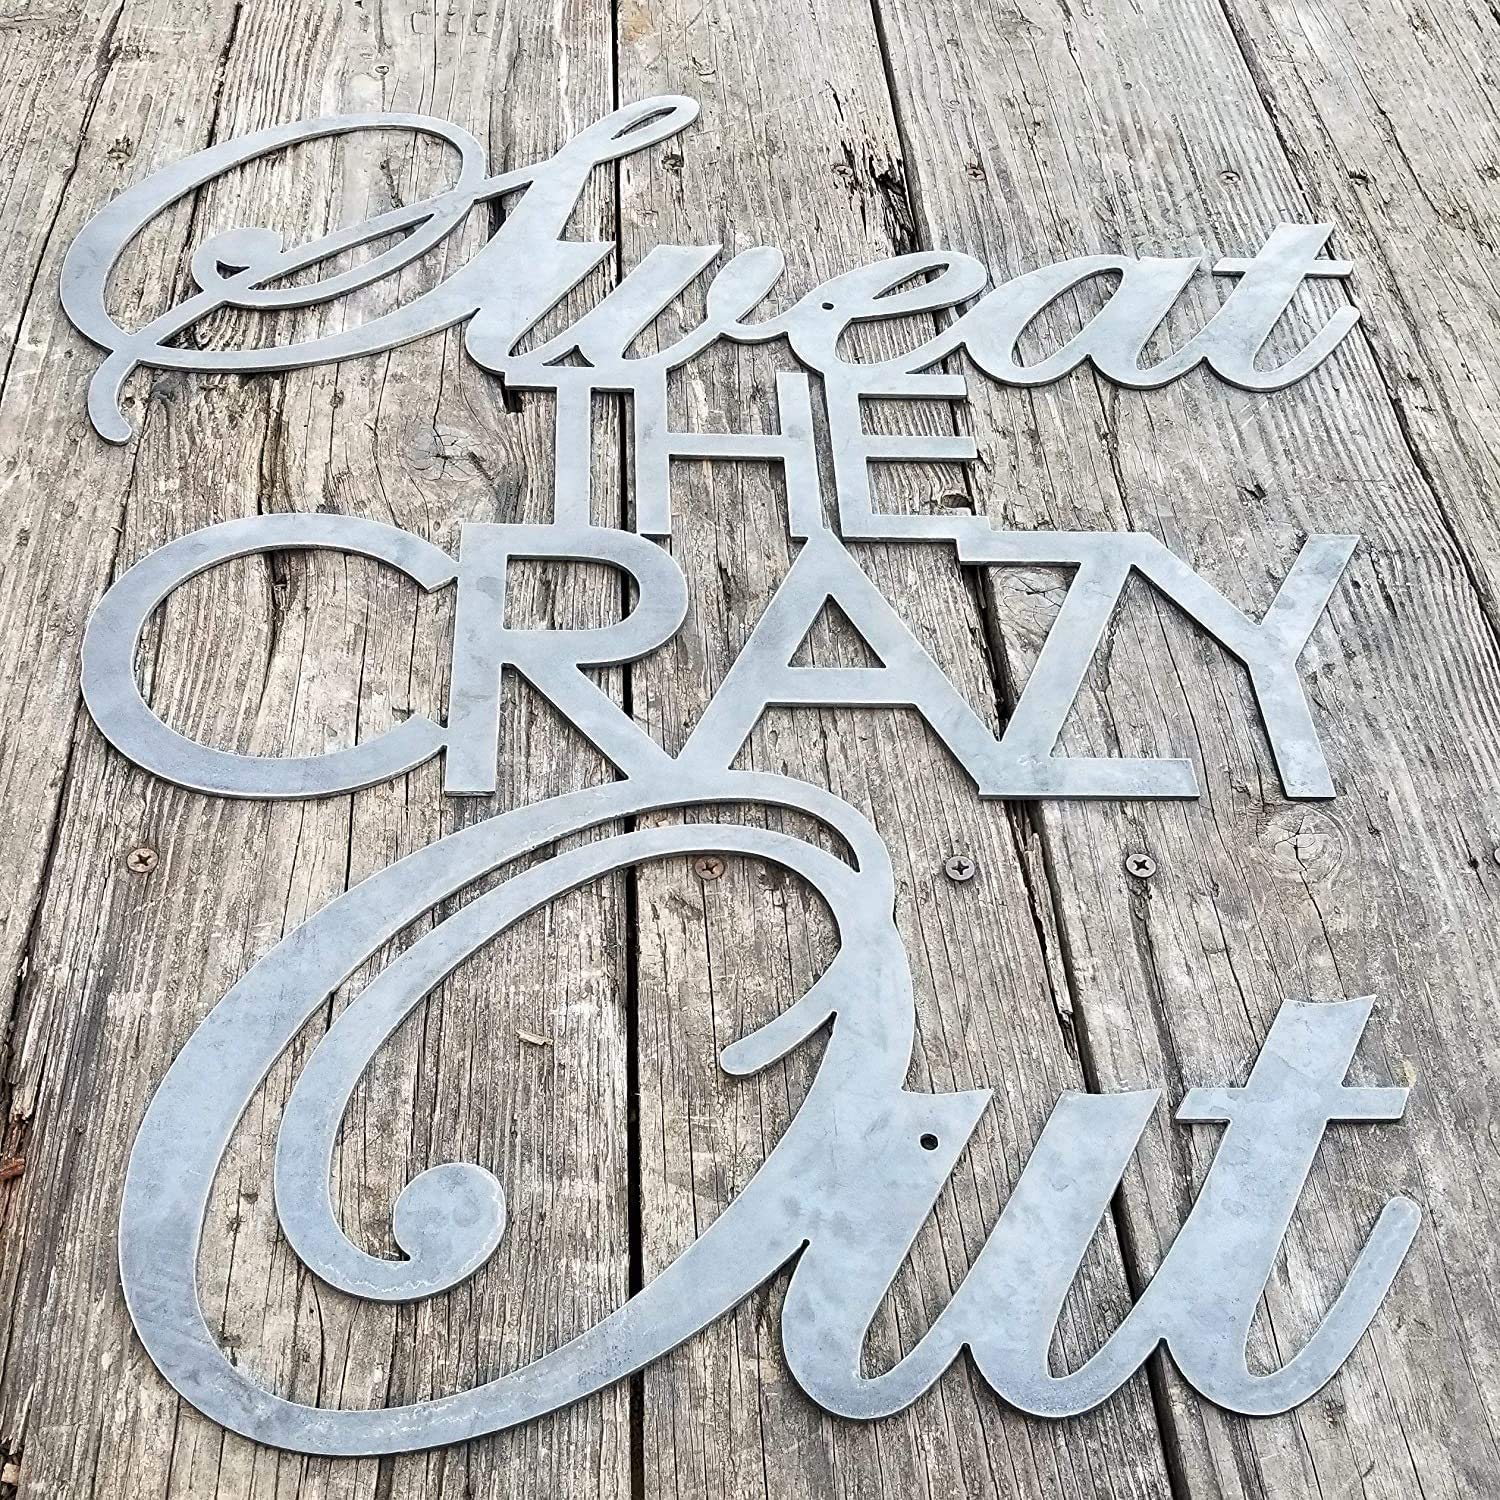 Maker Table Metal Sweat The Crazy Out - Home Gym Sign - Yoga, Work Out, Exercise, Peloton, Raw Steel, 24